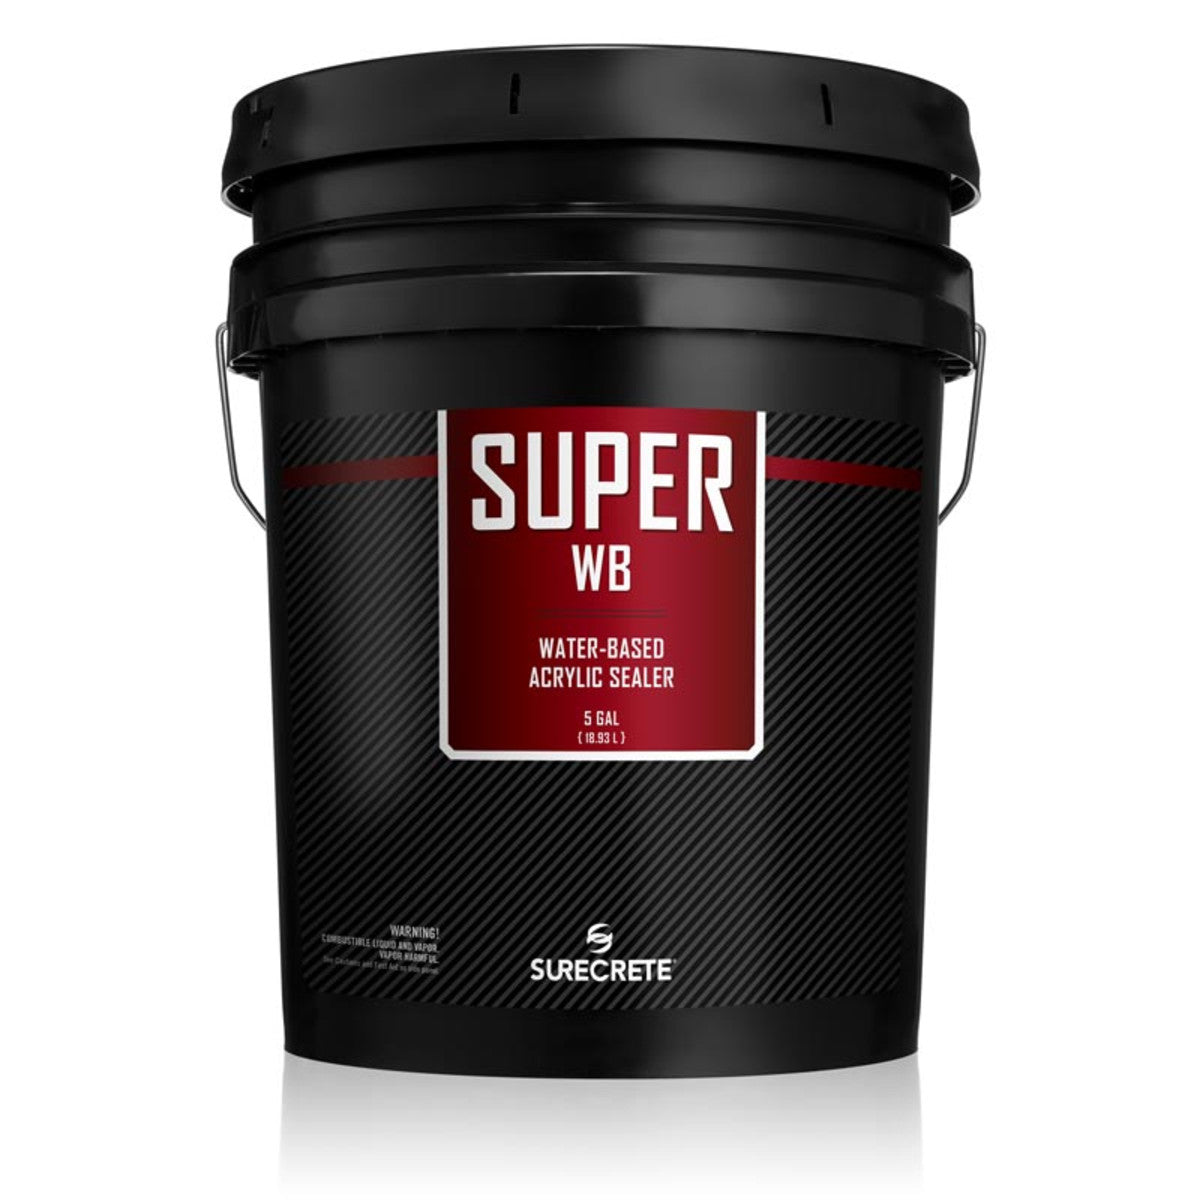 Surecrete Super WB Water-Based Clear Acrylic Concrete Sealer - 5 Gallon